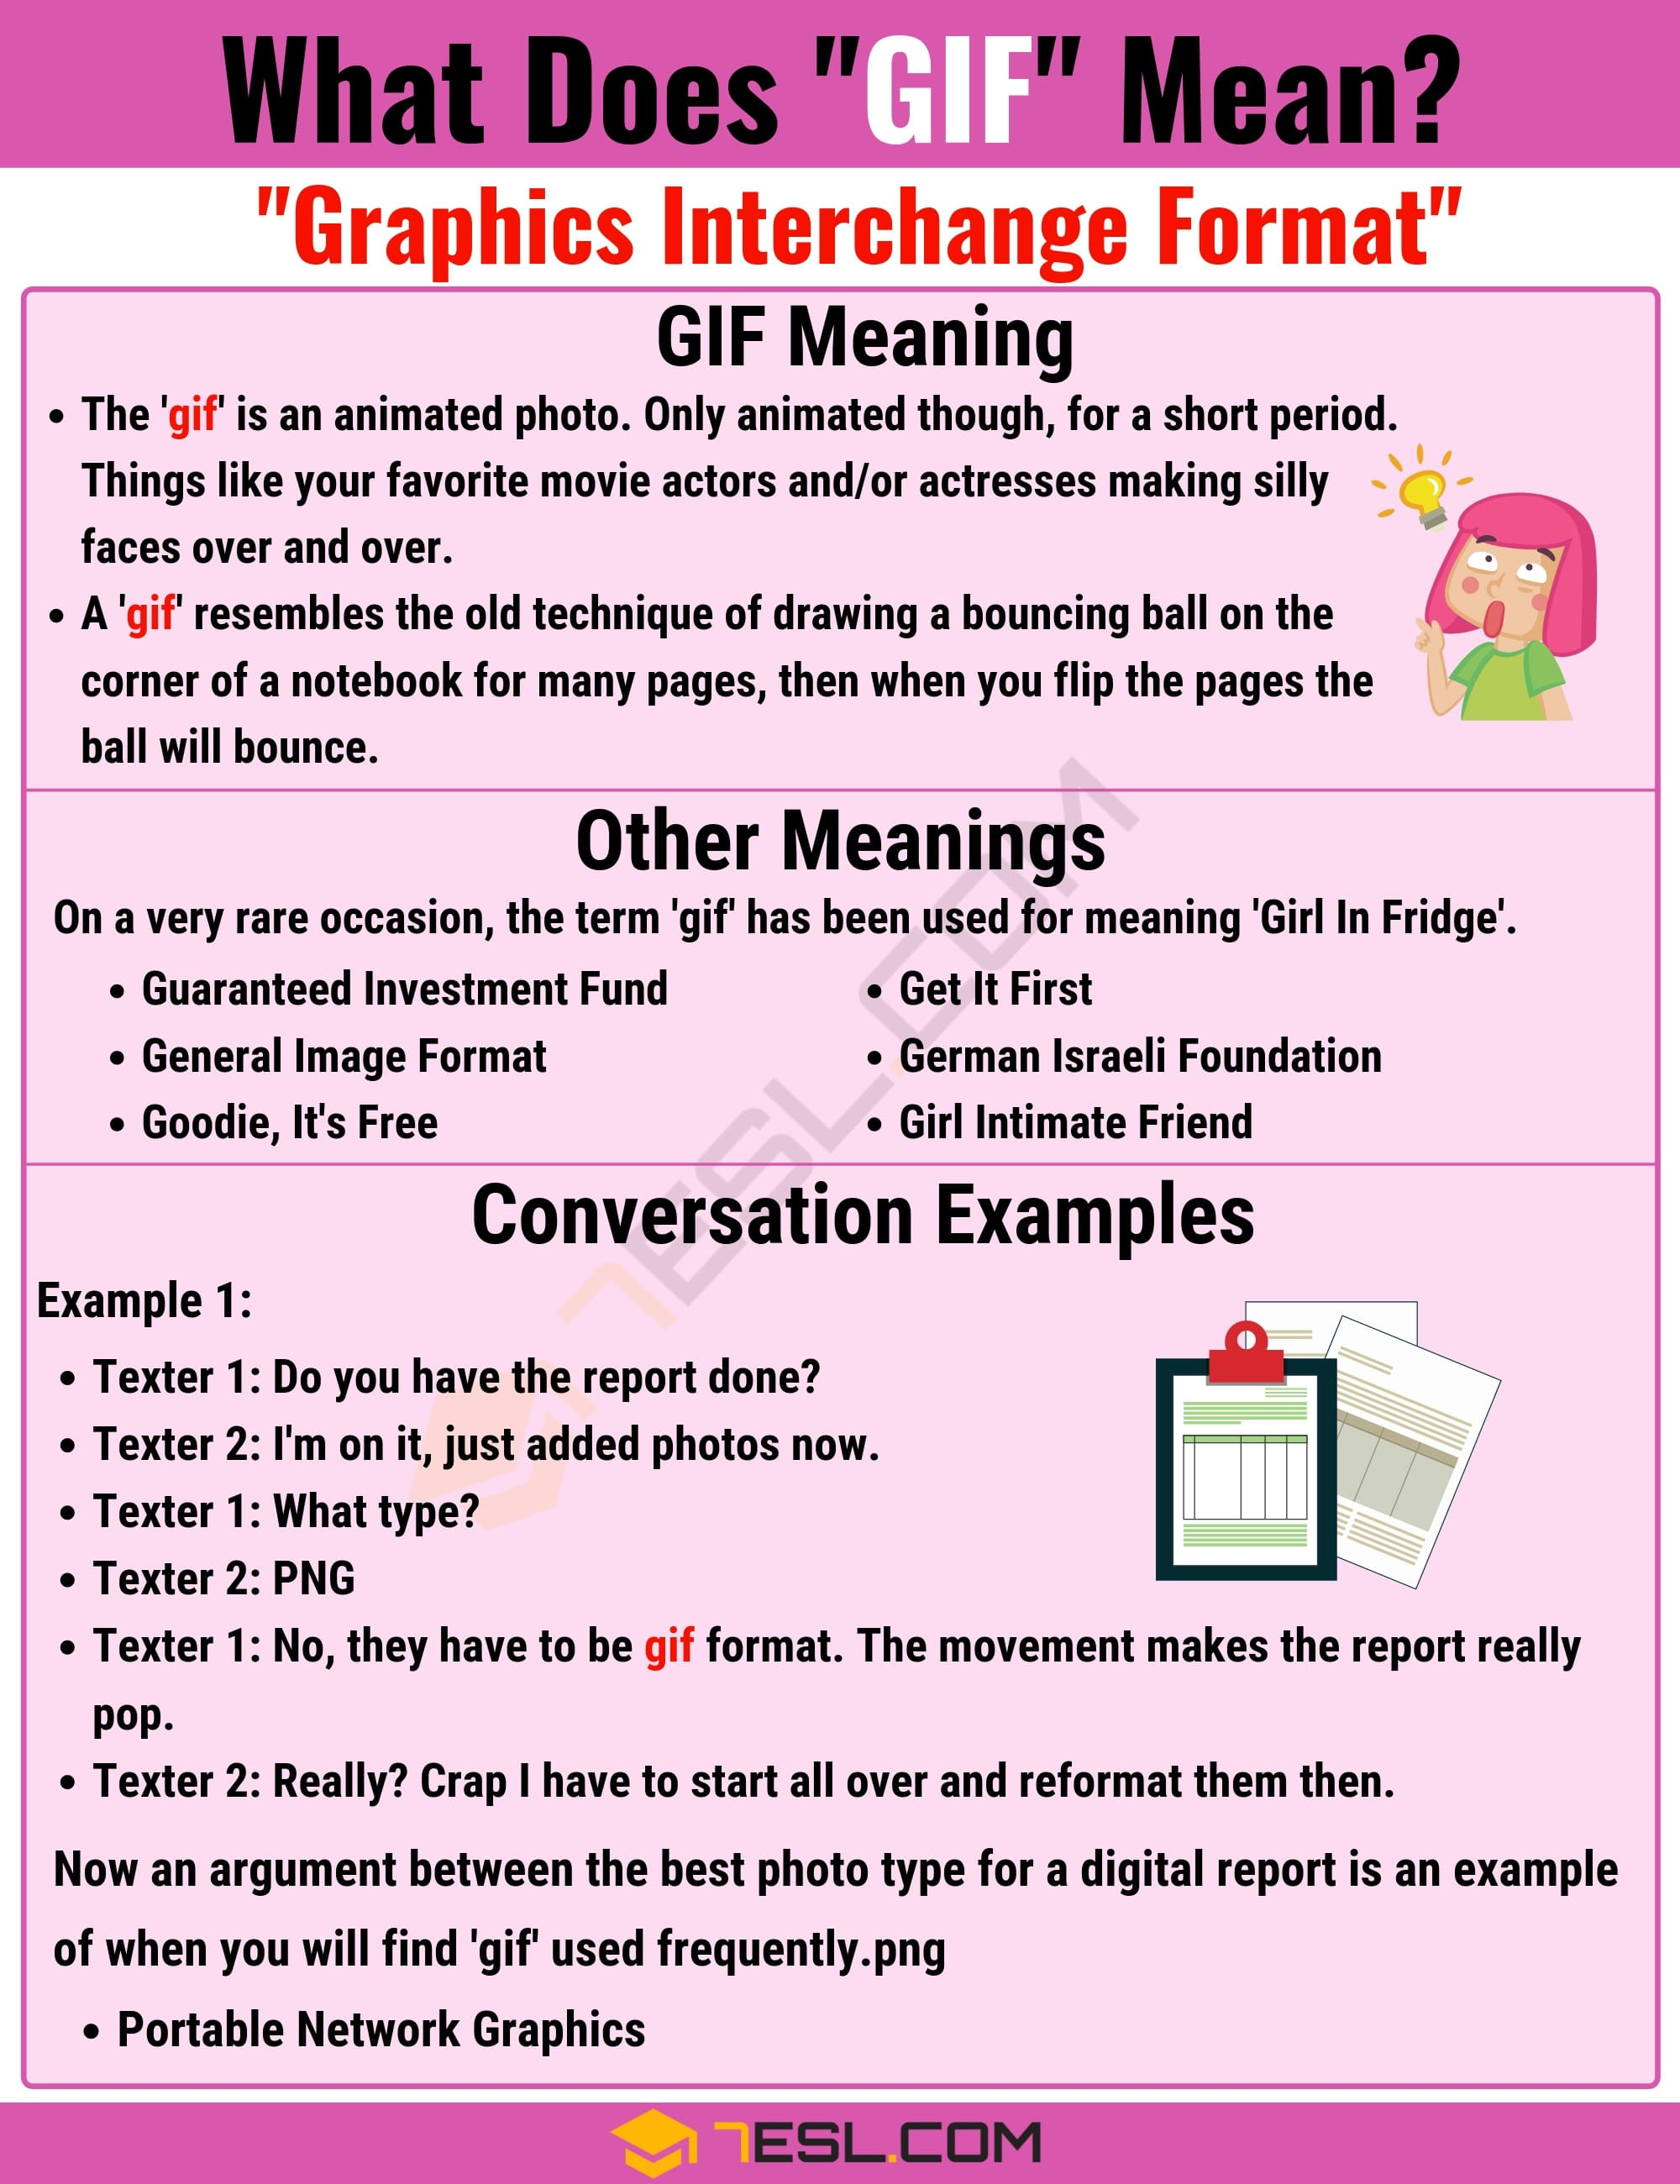 GIF Meaning: What Does GIF Mean and Stand for? 2